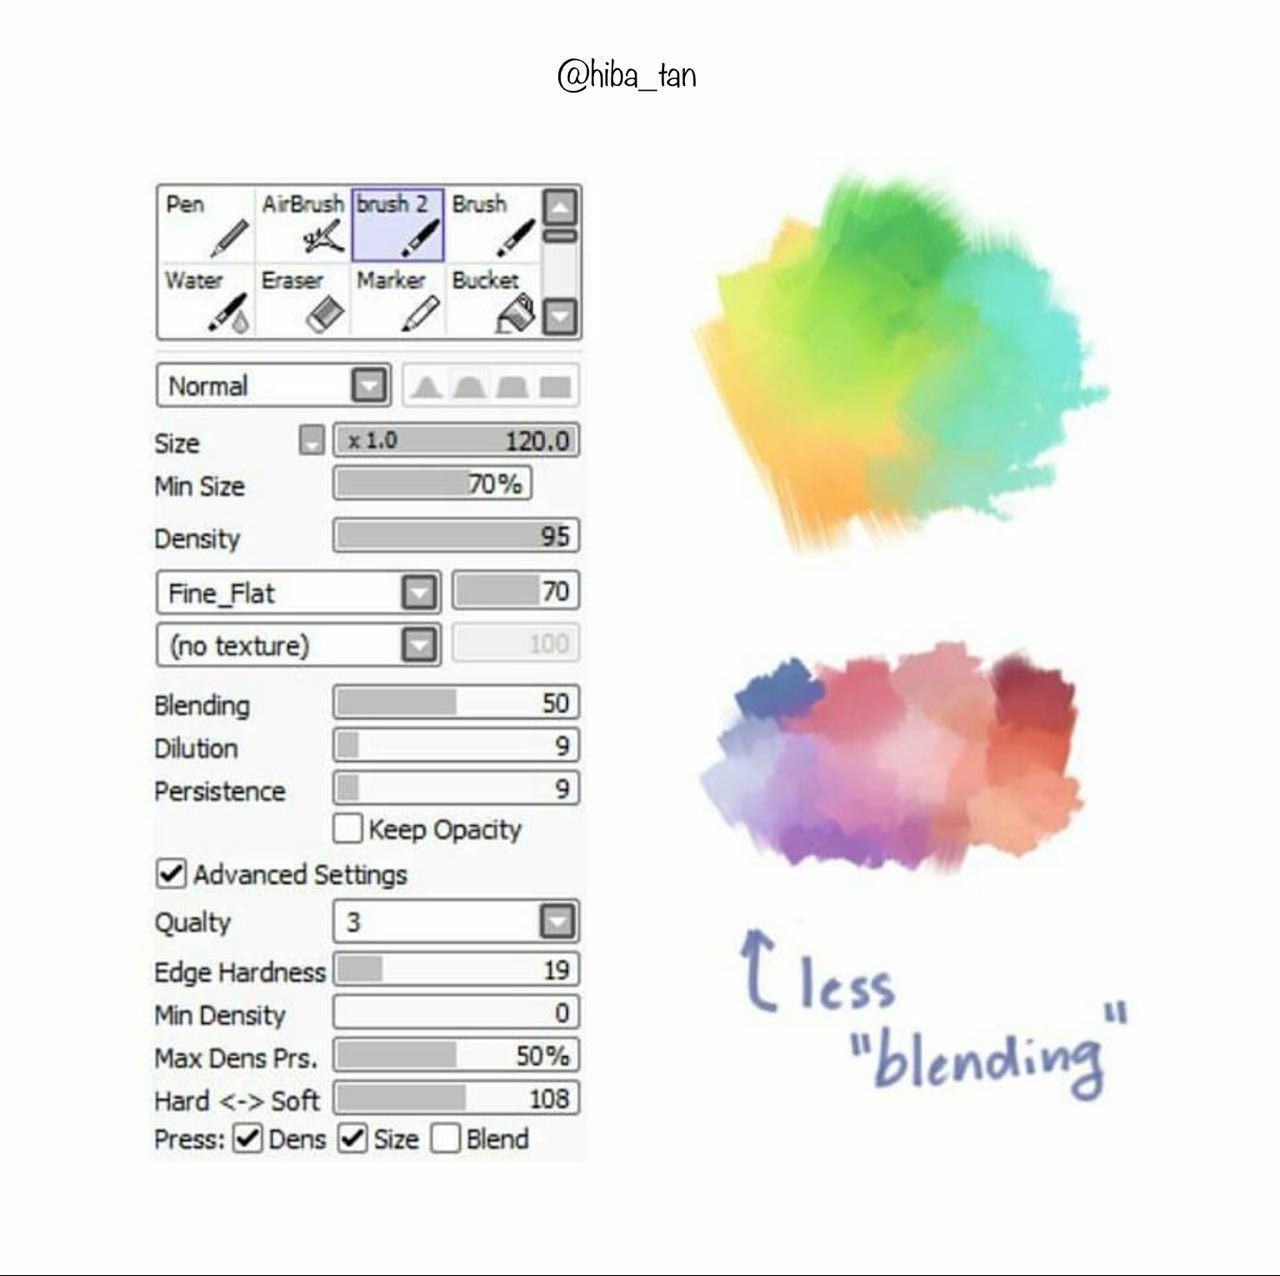 Pin by nun on B- Paint tool Sai in 2019 | Firealpaca brushes